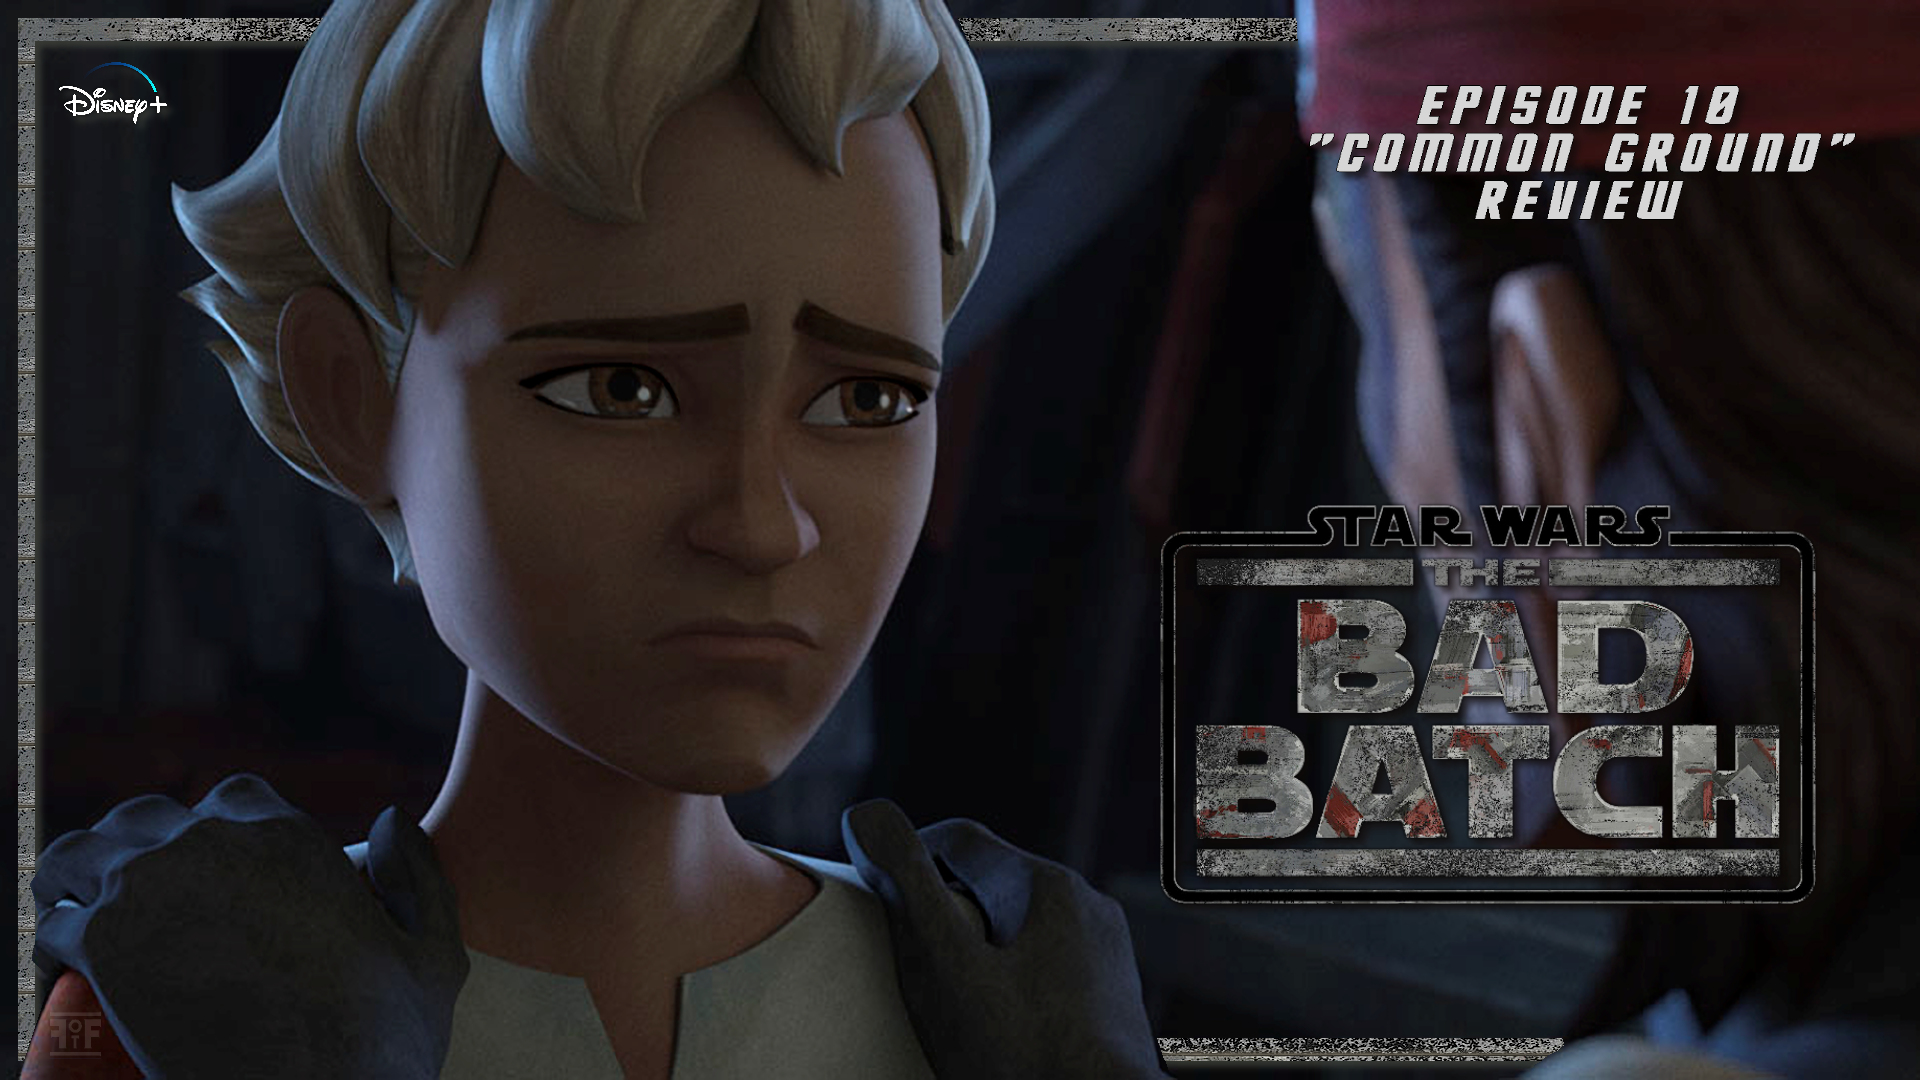 The Bad Batch (Episode 10: Common Ground) Review